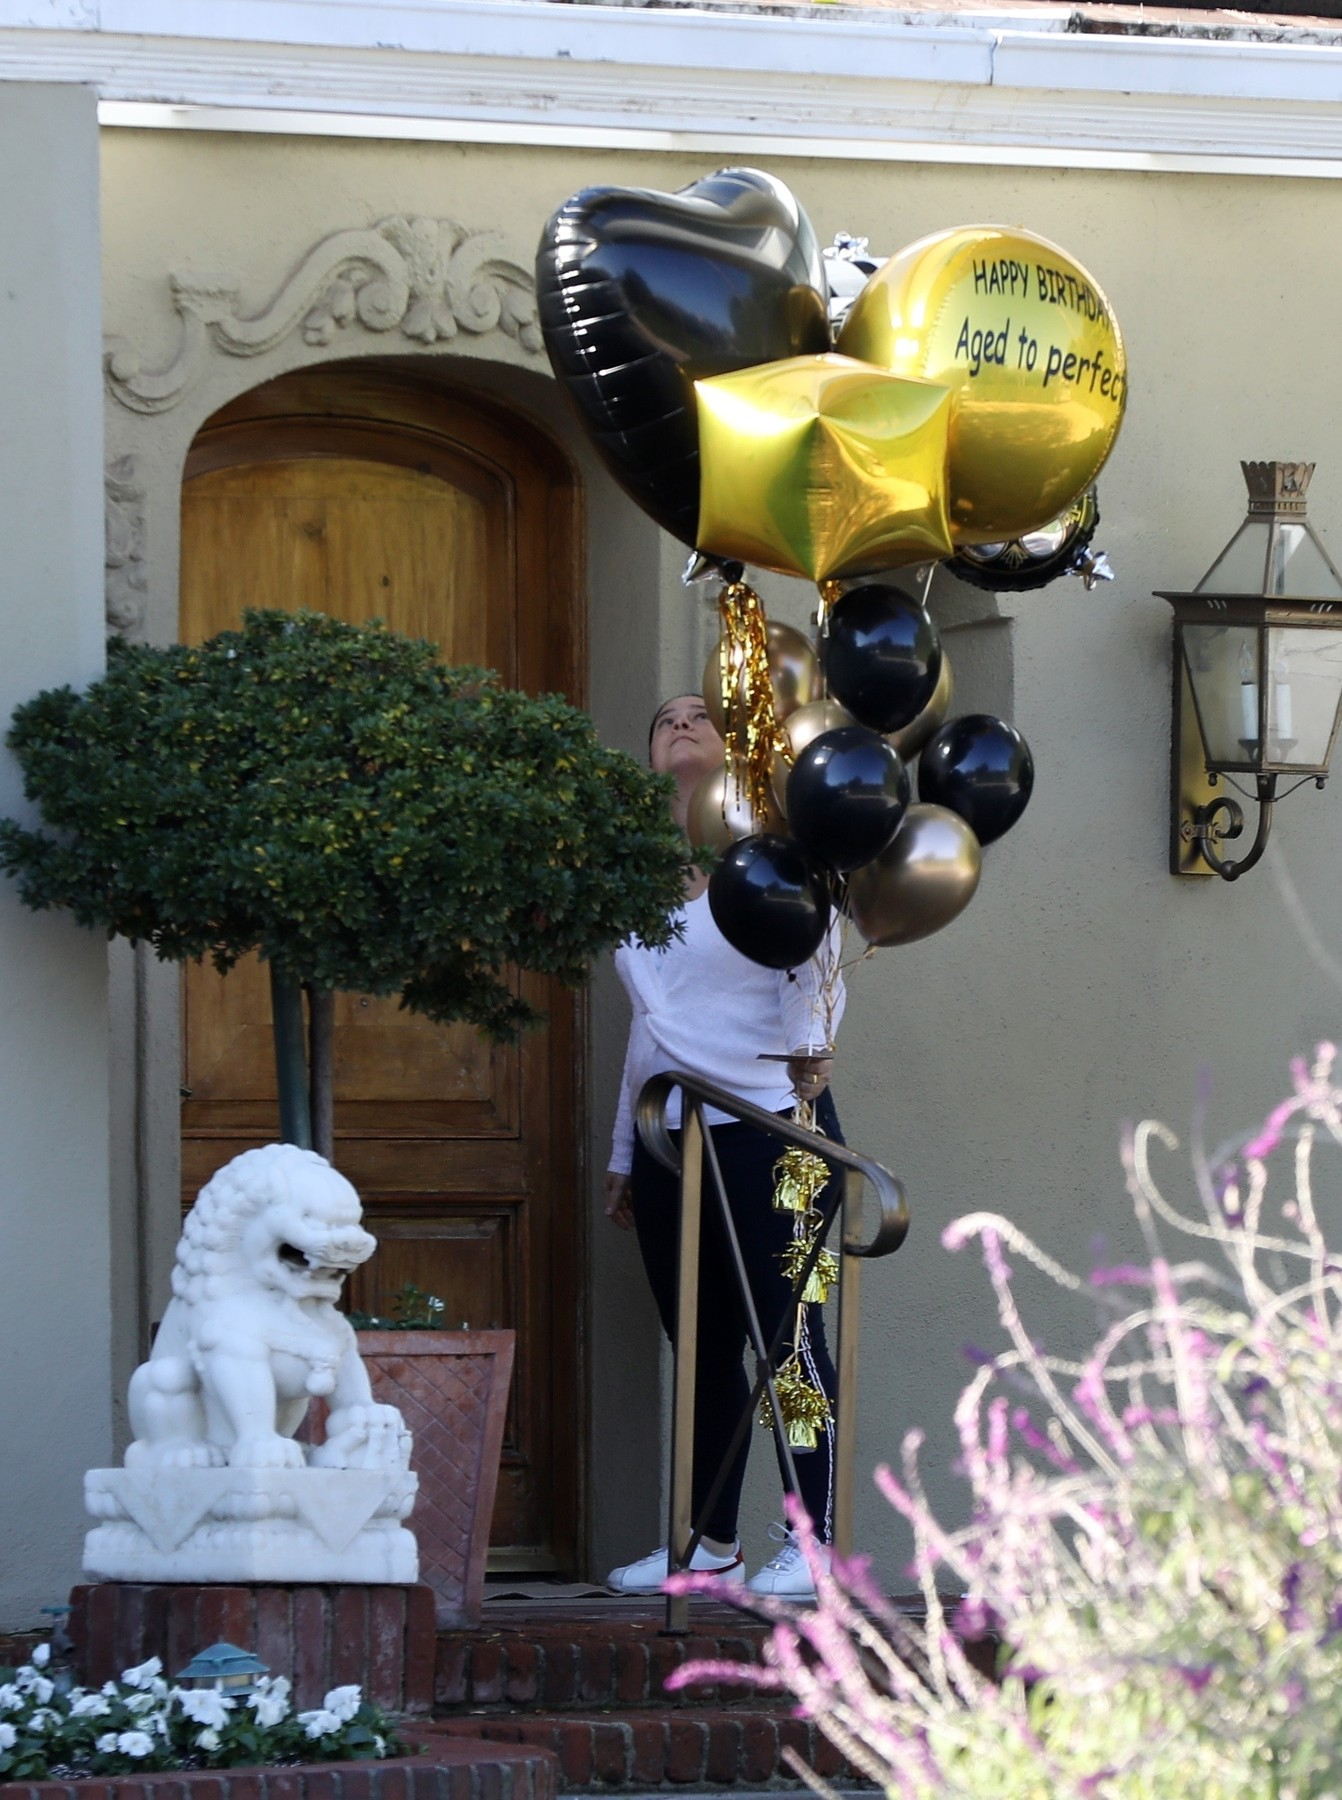 Los Angeles, CA  - Kirk Douglas gets birthday balloons delivered with